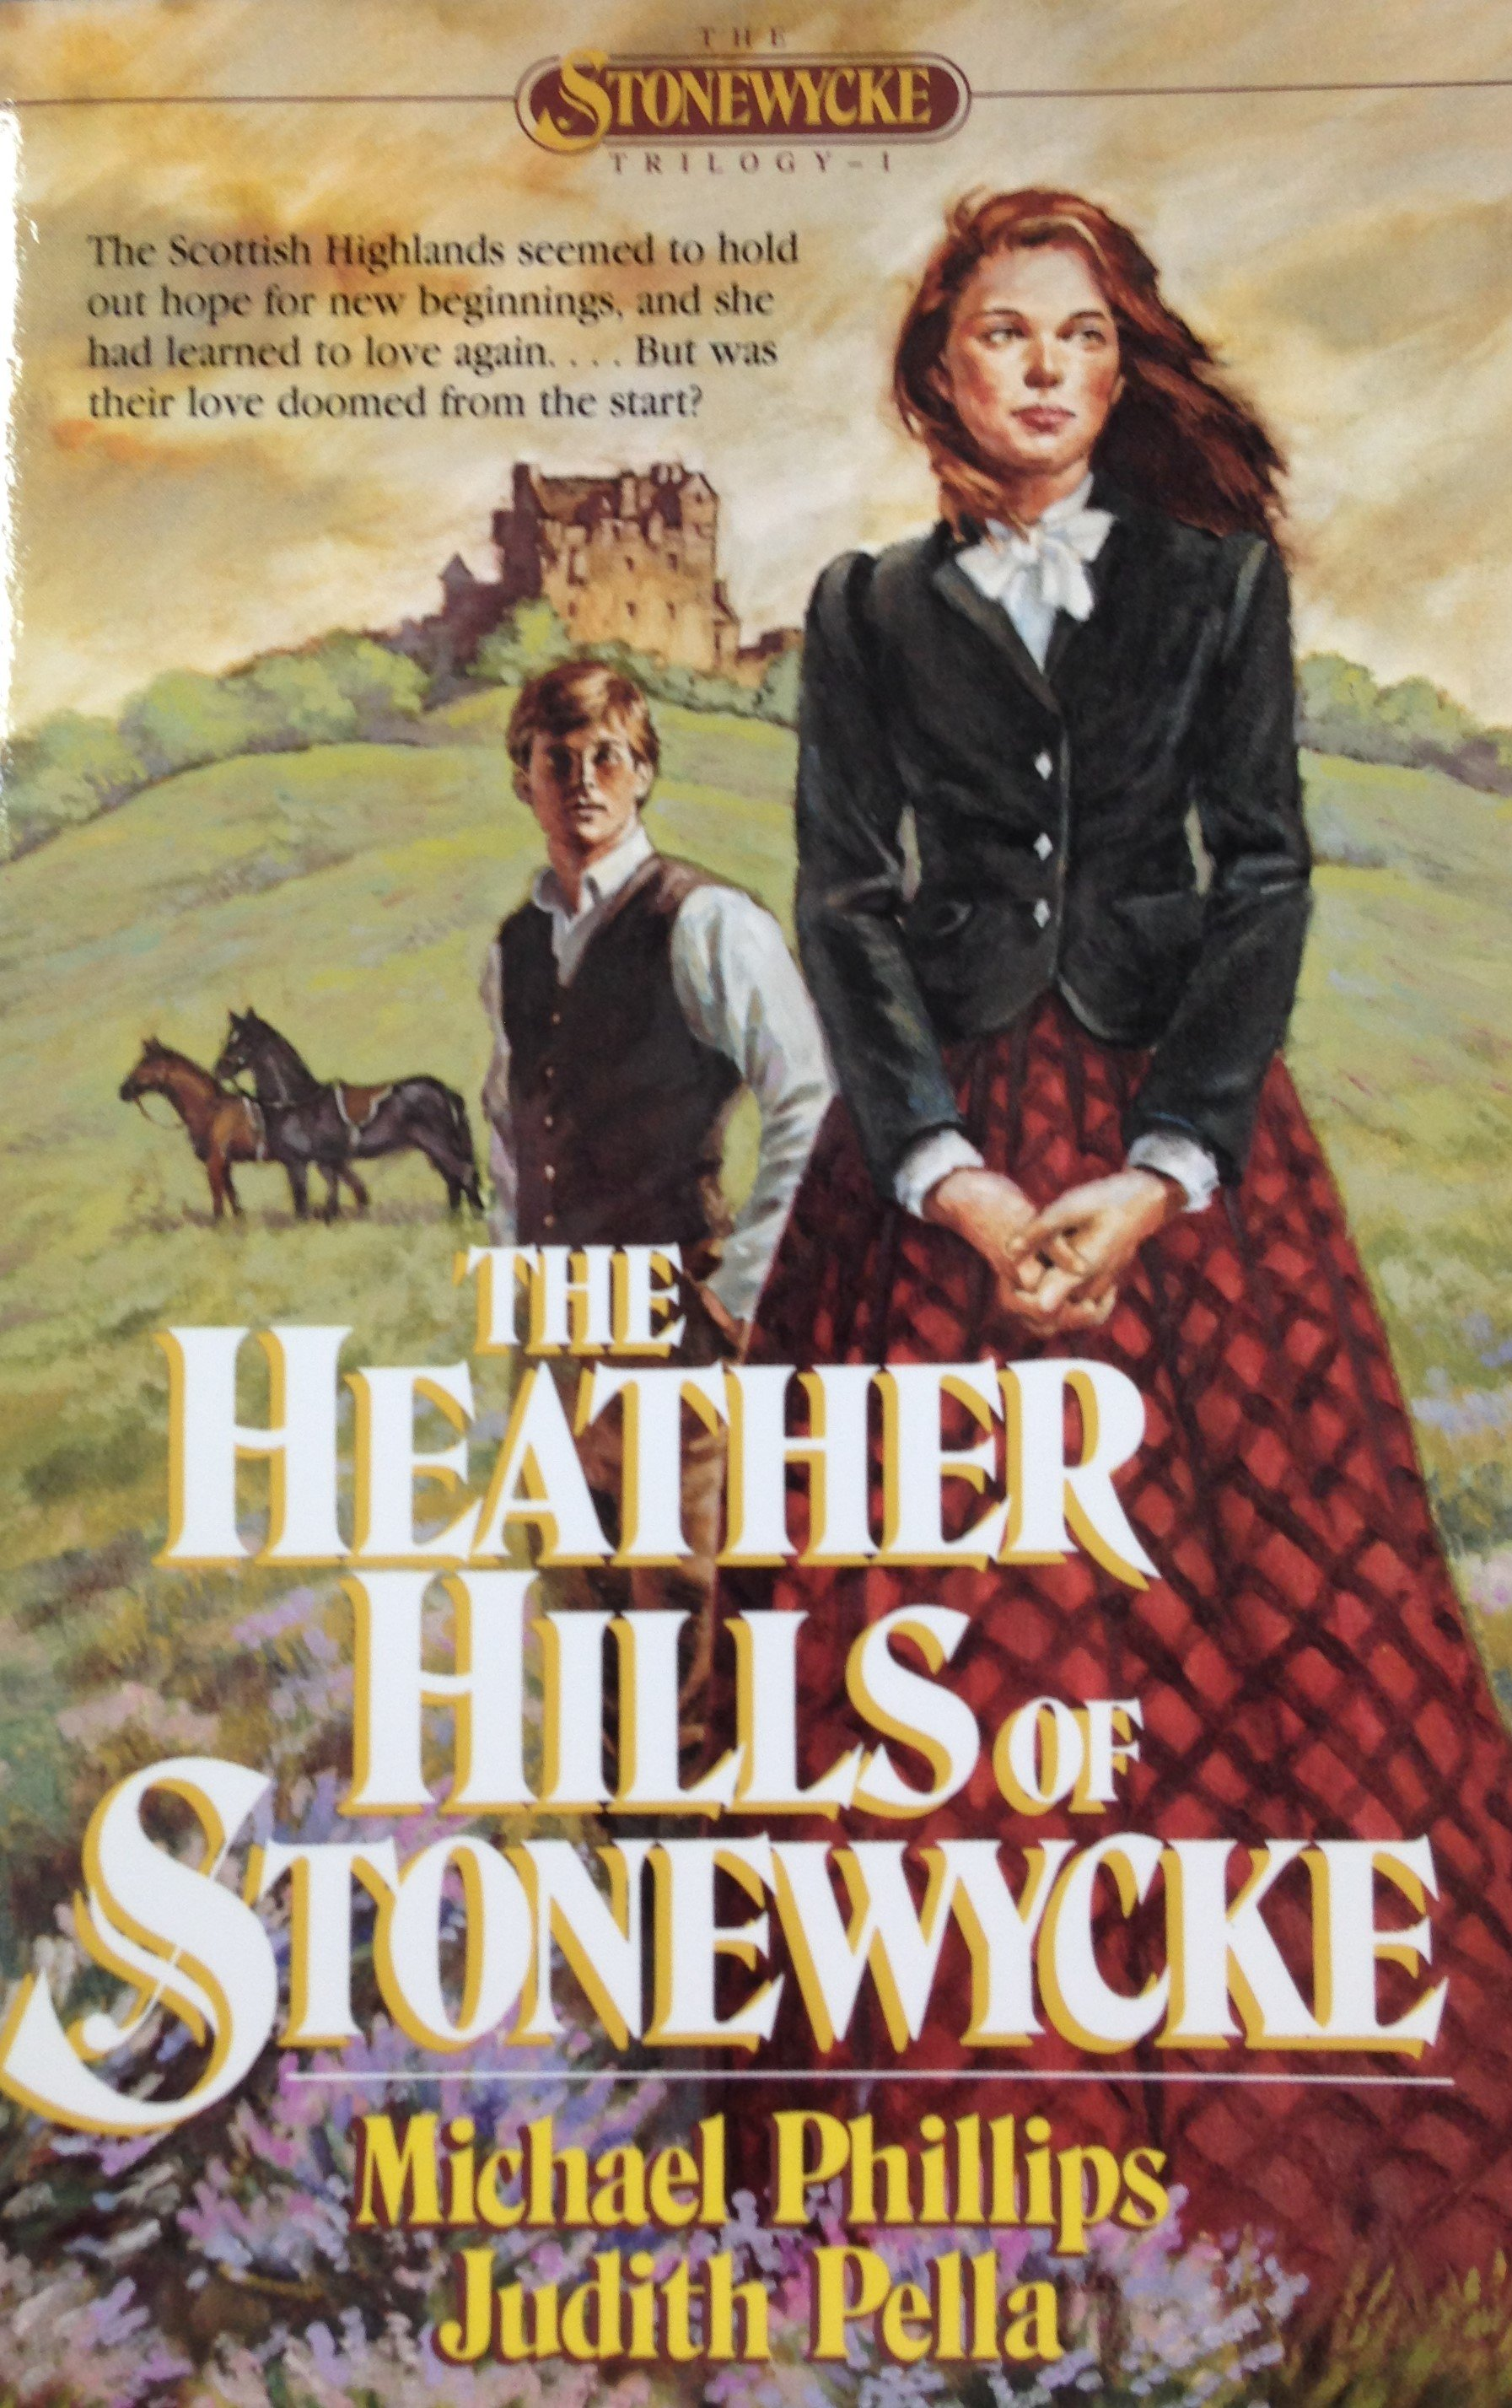 The Heather Hills of Stonewycke by Michael Phillips and Judith Pella 00116